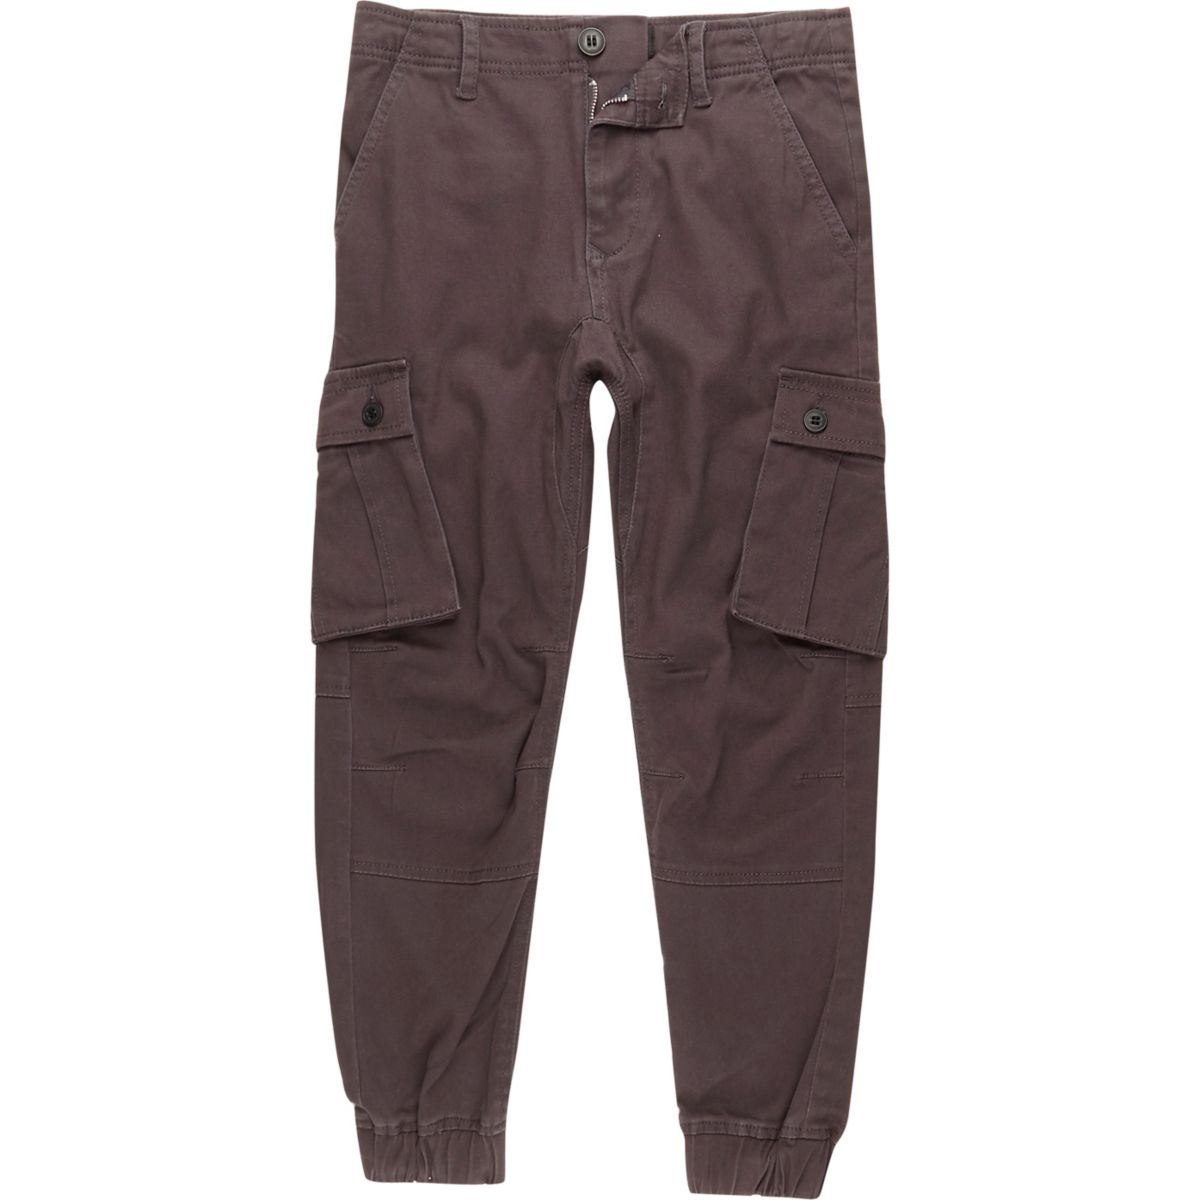 Boys dark grey cargo pants